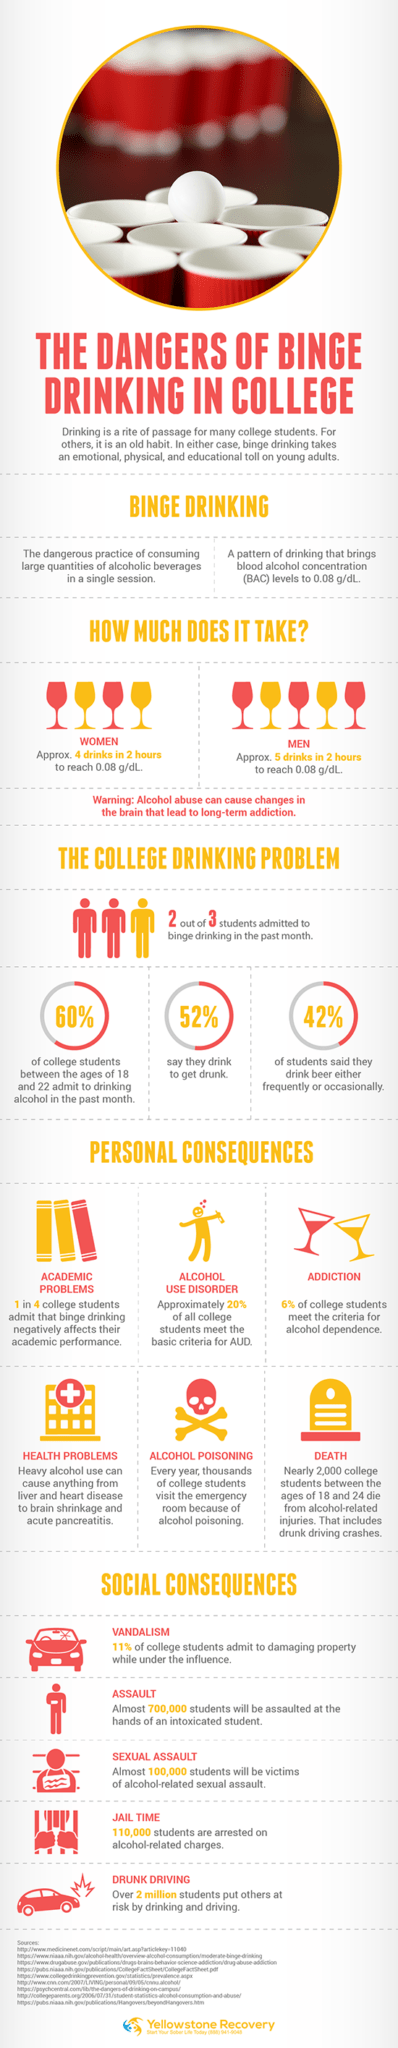 The Dangers of Binge Drinking in College Infographic